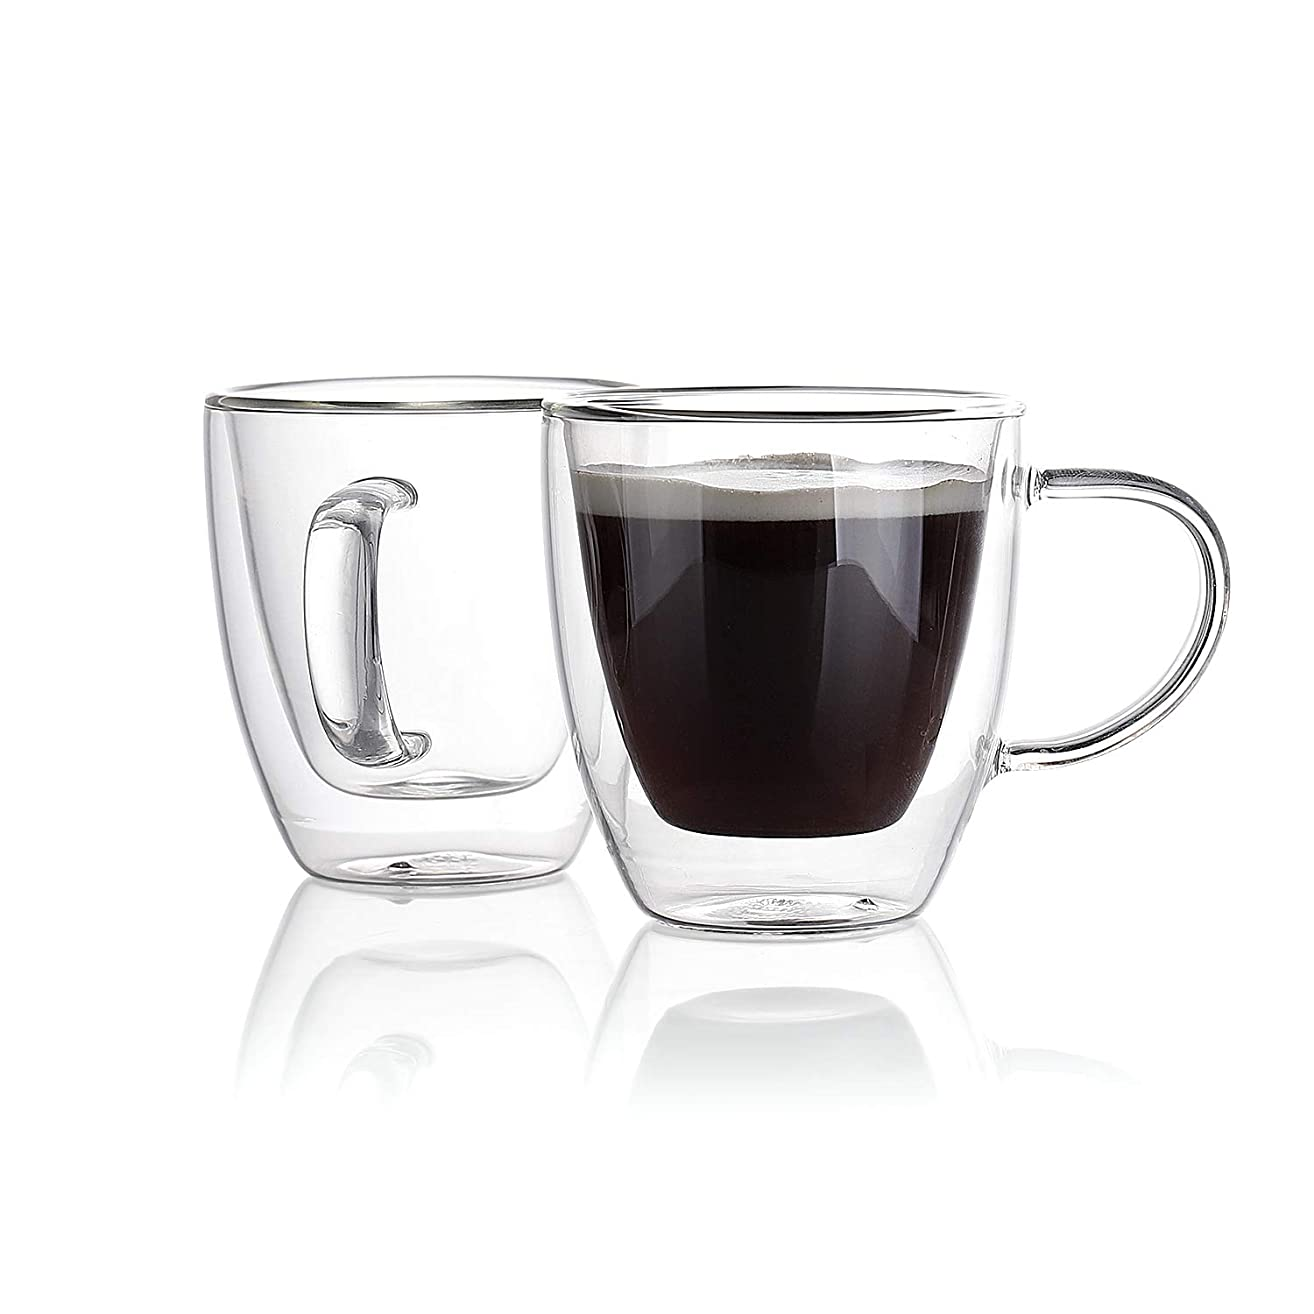 Sweese 4610 Espresso Cups 5.4 oz Set of 2 - Double Wall Insulated Glass Mugs with Handle, Everyday Coffee Glasses Cups Perfect for Espresso Machine and Coffee Maker